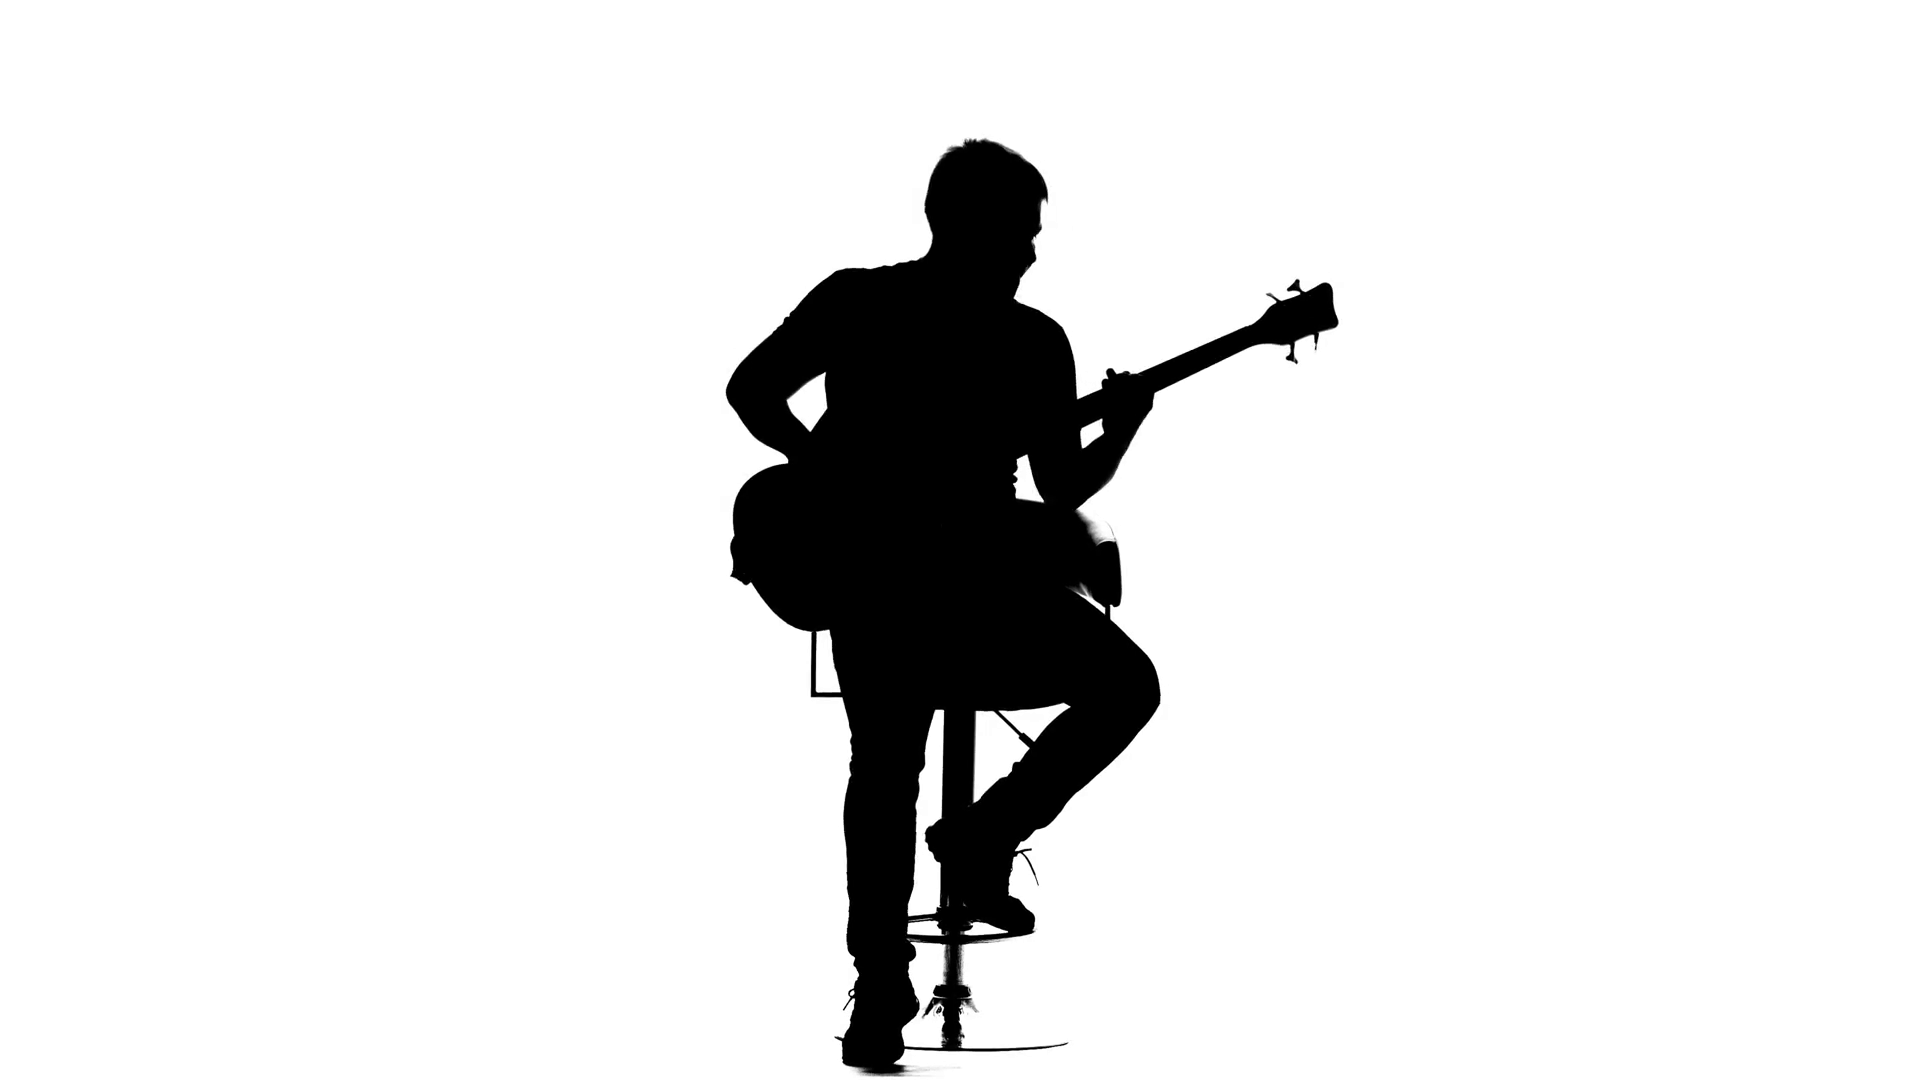 man playing guitar silhouette black silhouette of guy playing guitar on white background playing silhouette man guitar